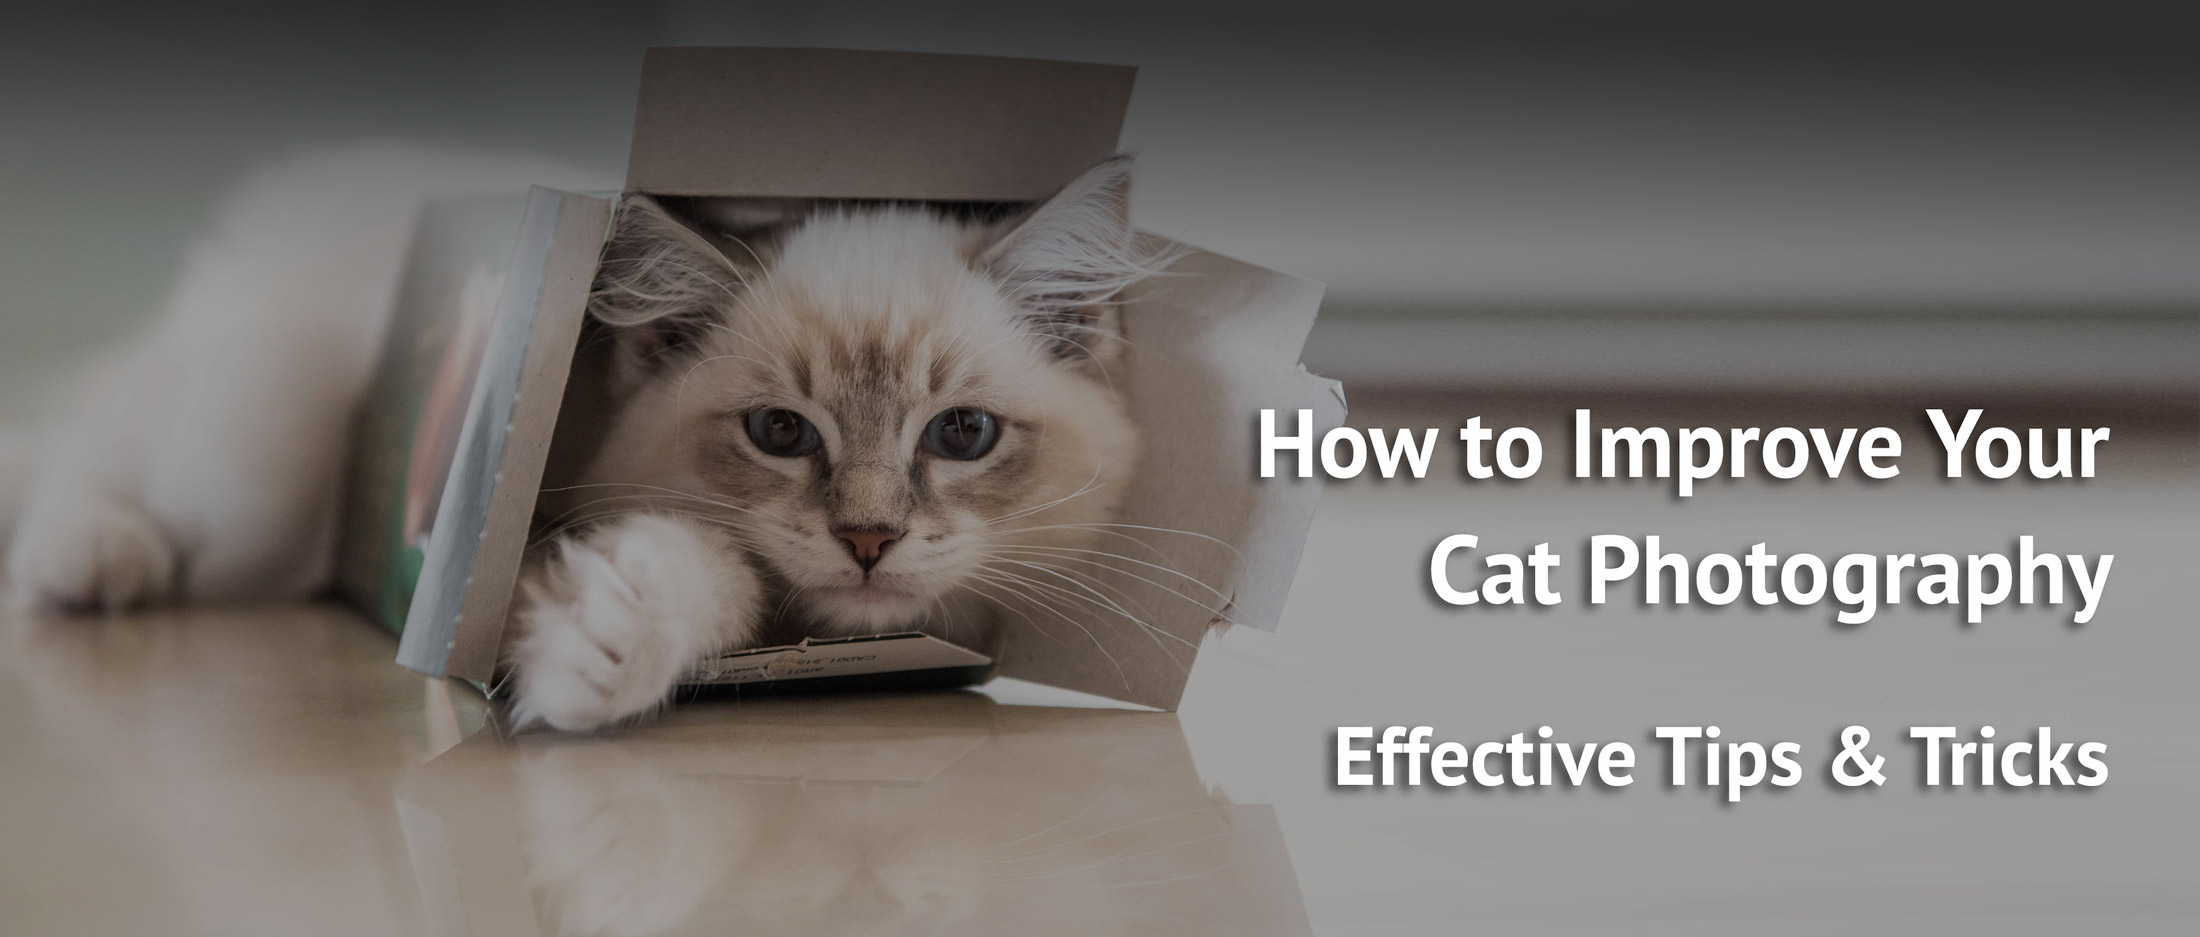 How-to-improve-your-cat-pictures-dramatically-easy-tips-and-tricks- ragdoll-casper looking through a box